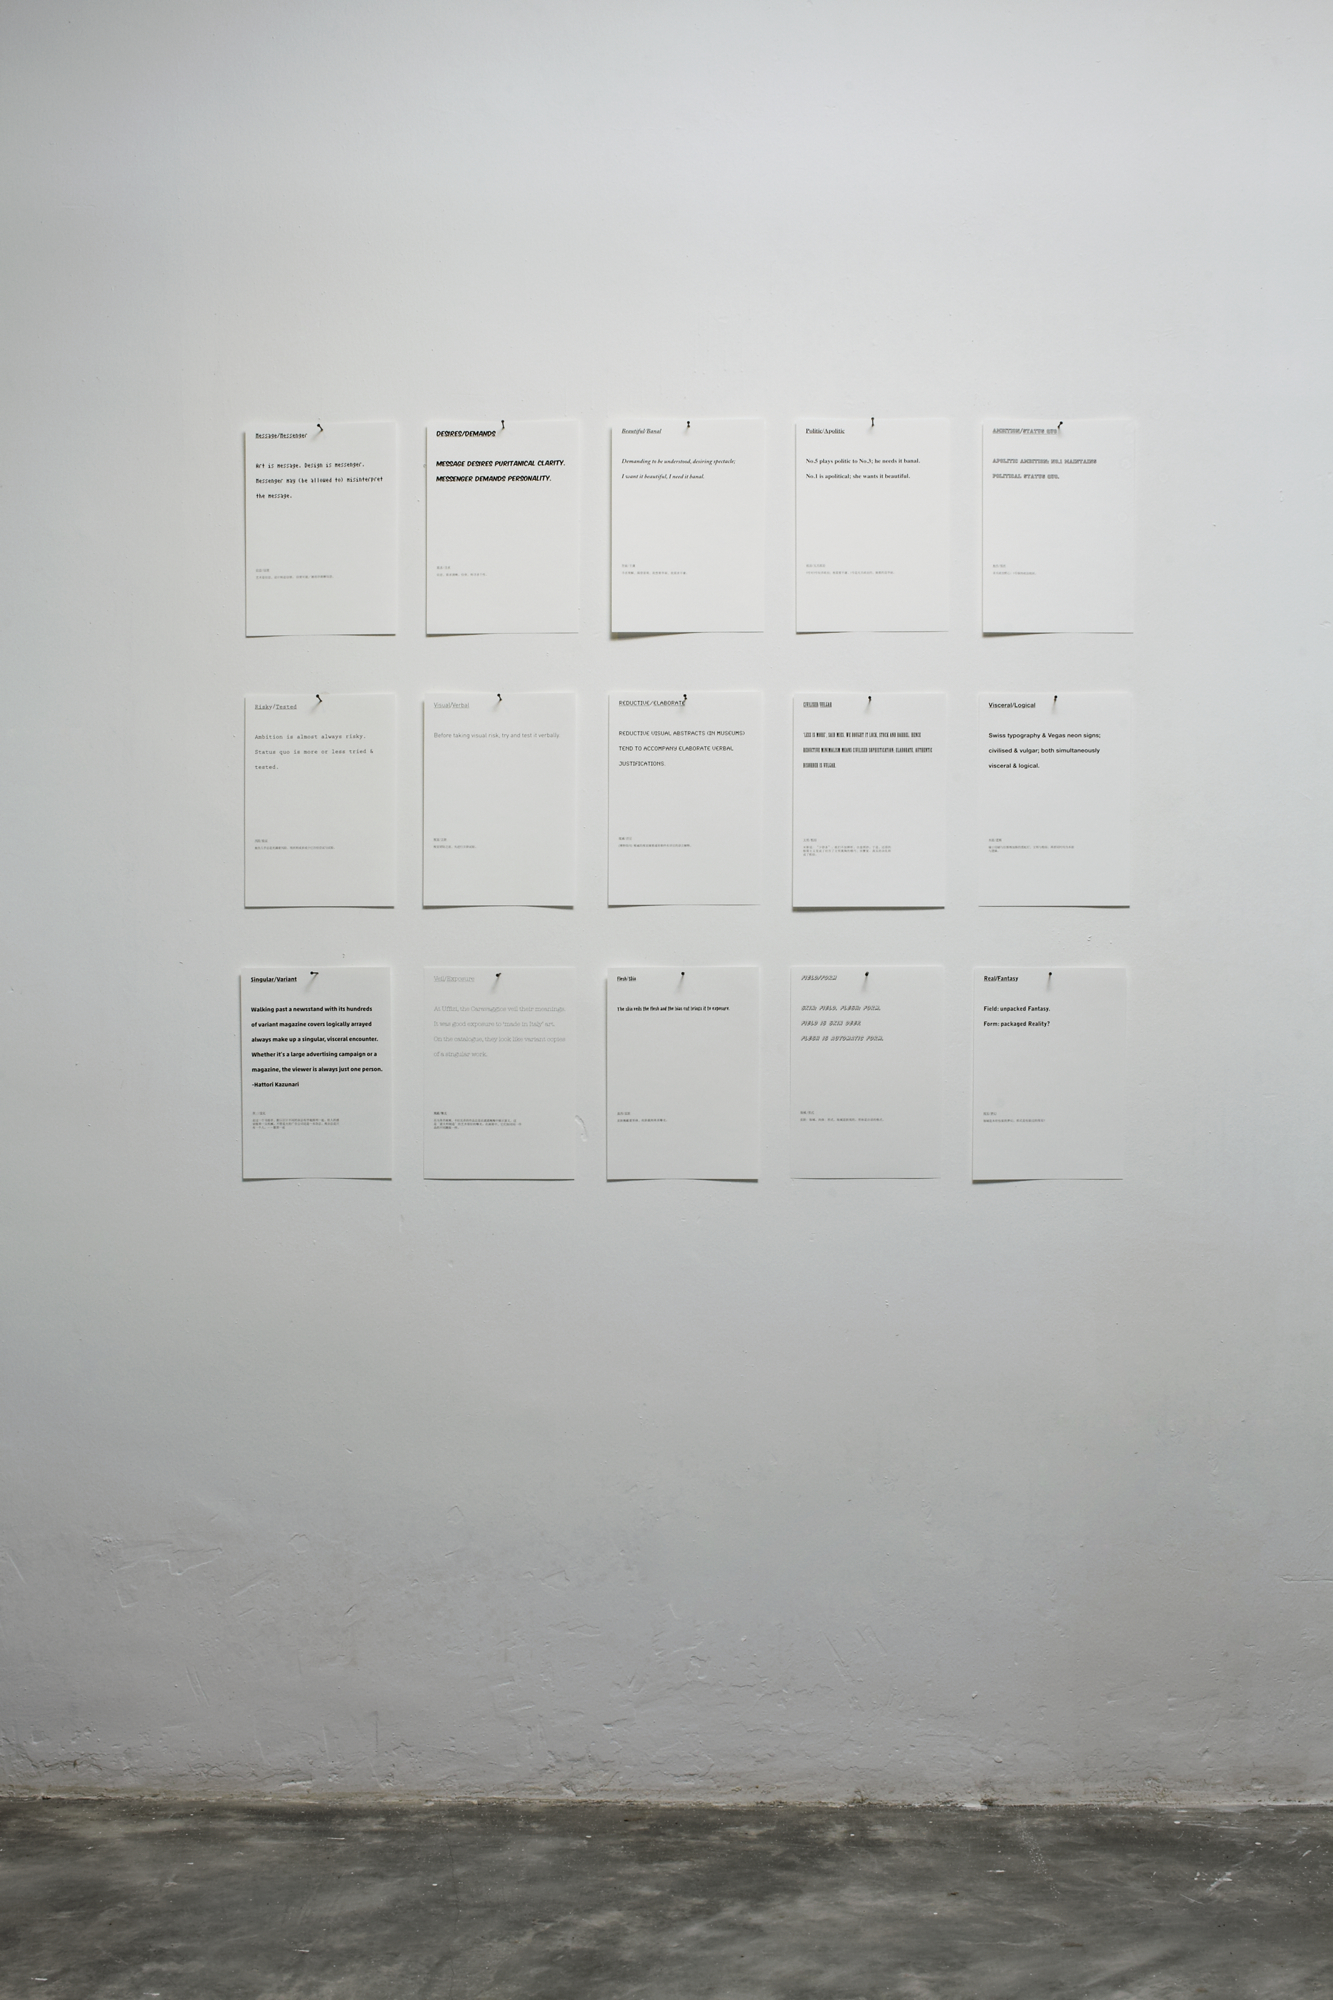 Boedi Widjaja, Beautiful/Banal15 sheets of A4 paper with text, 2009Demanding to be understood, desiring spectacle;I want it beautiful, I need it banal. -